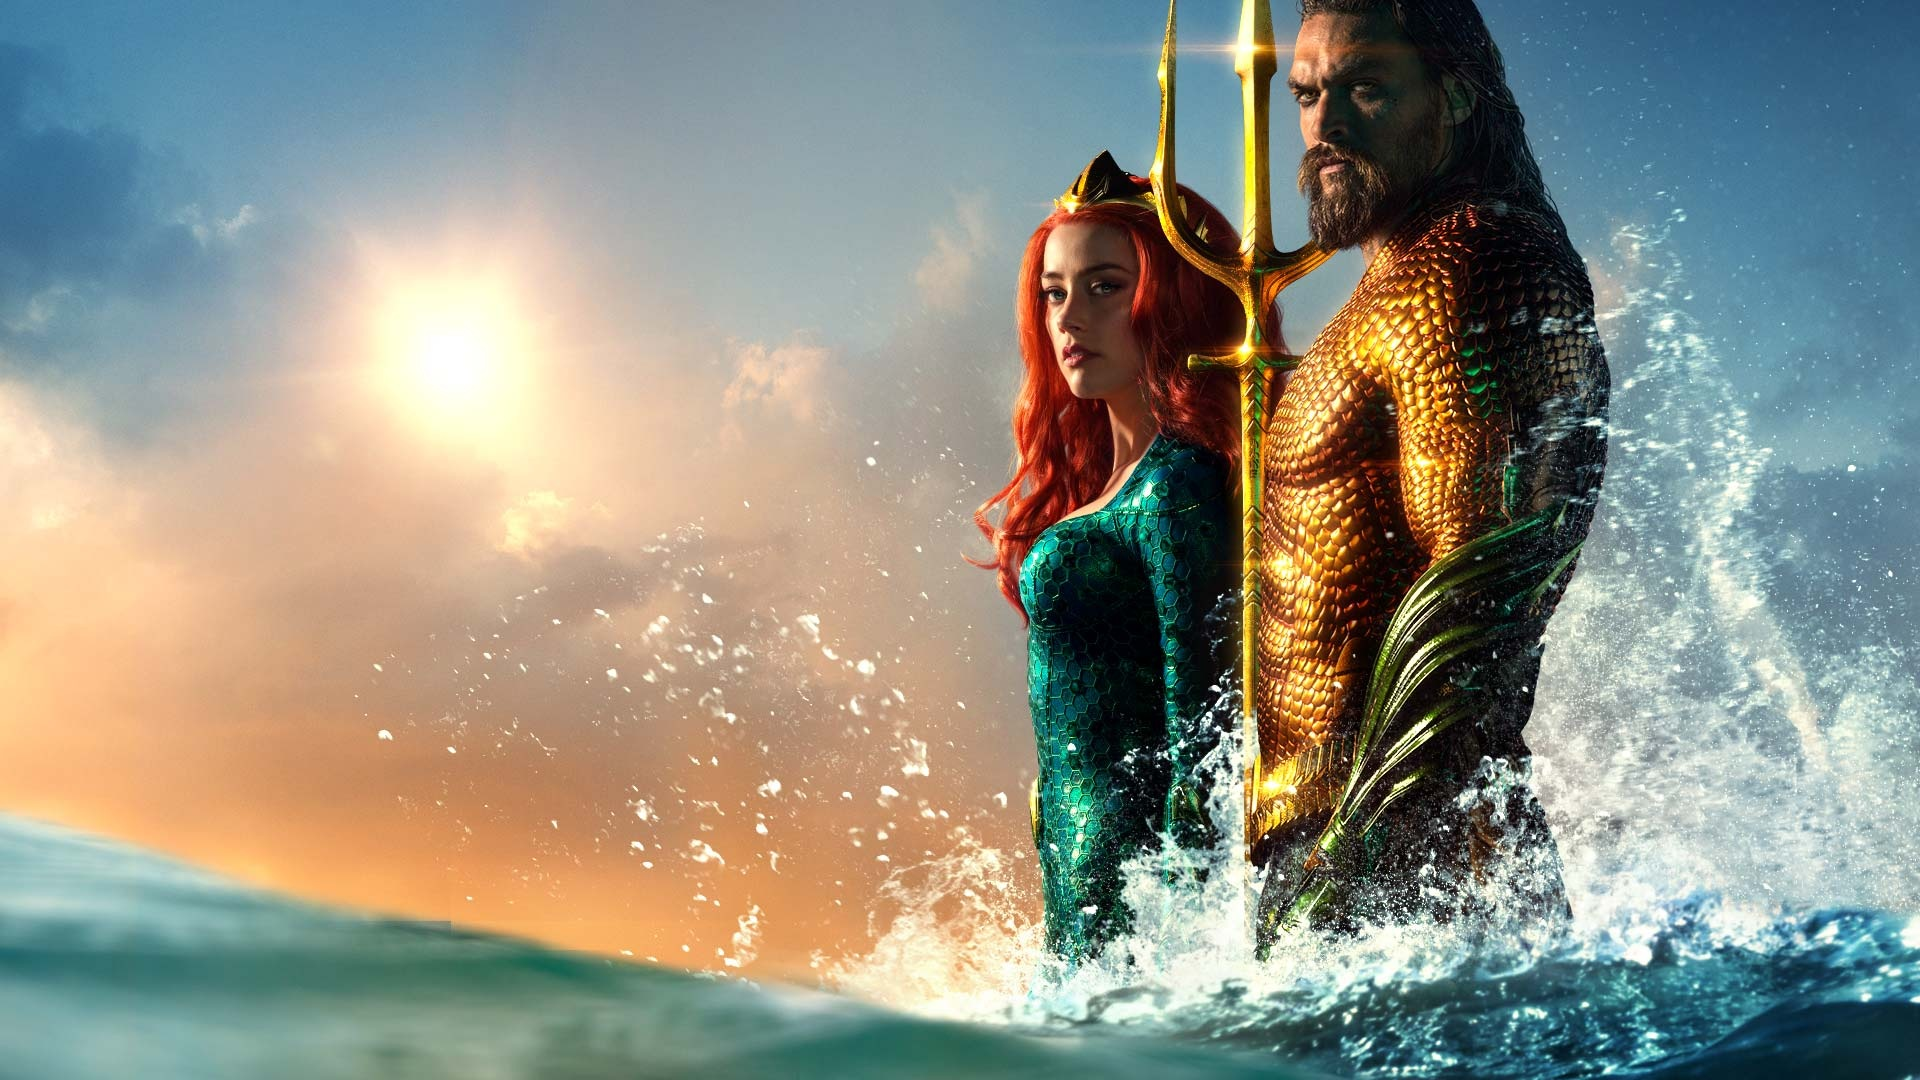 Aquaman, Marvel movie HD wallpapers #18 - 1920x1080